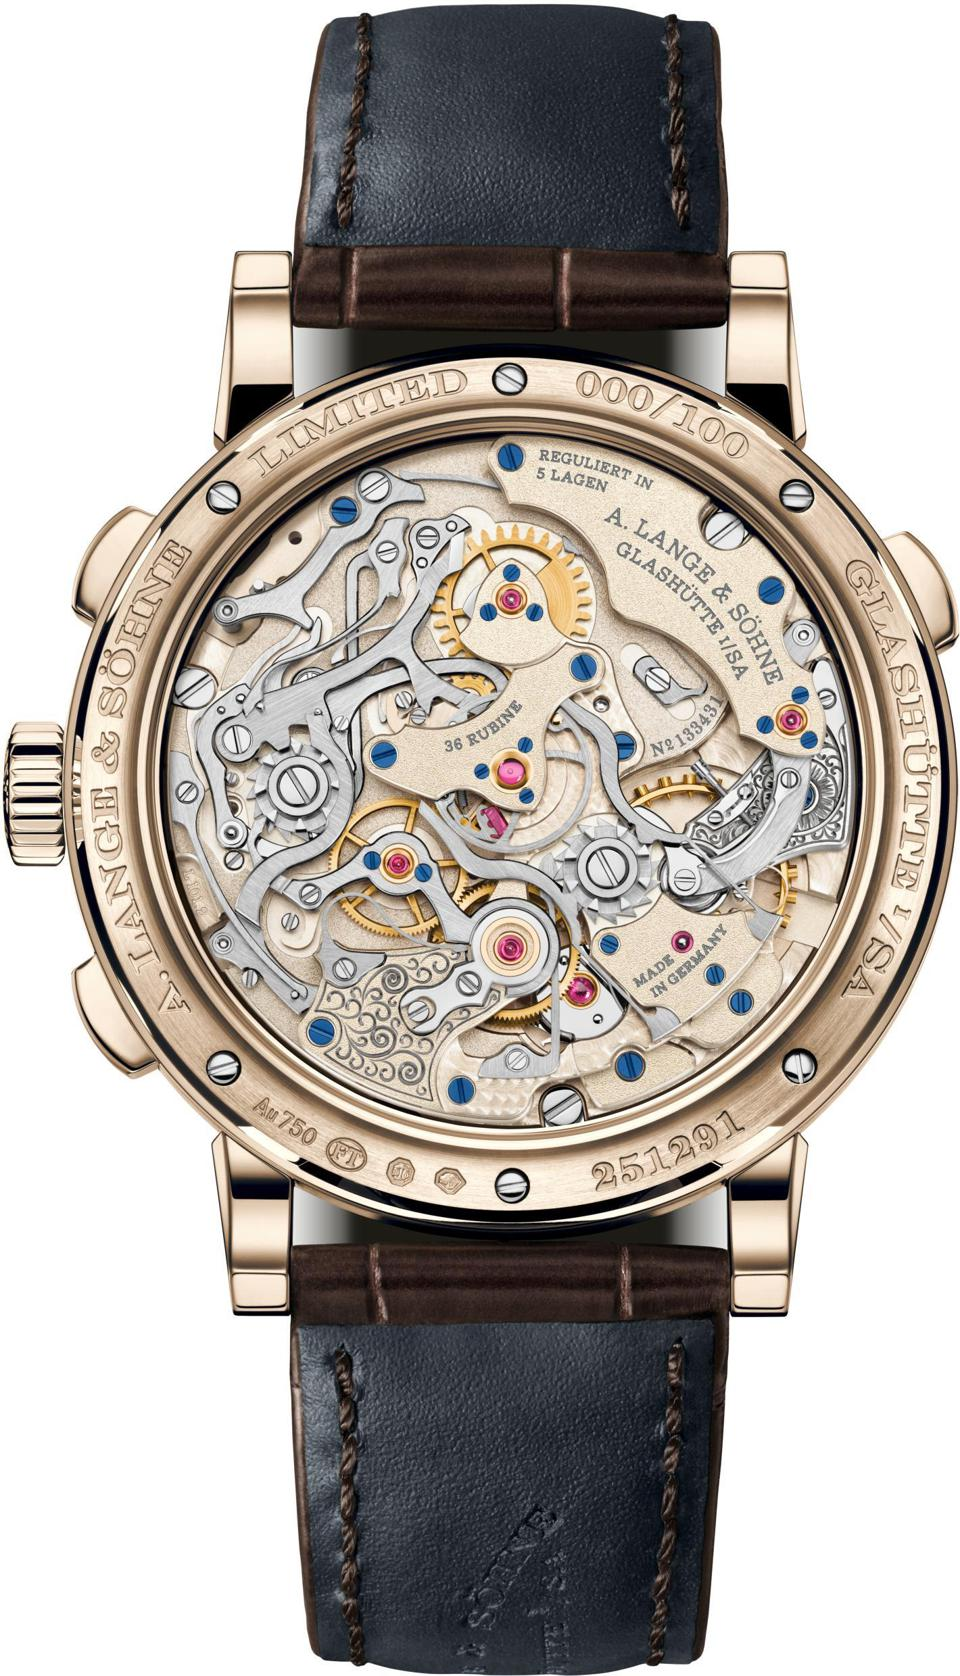 A. Lange  &  Söhne Rattrapante Honey Gold, Watches & Wonders Shanghai